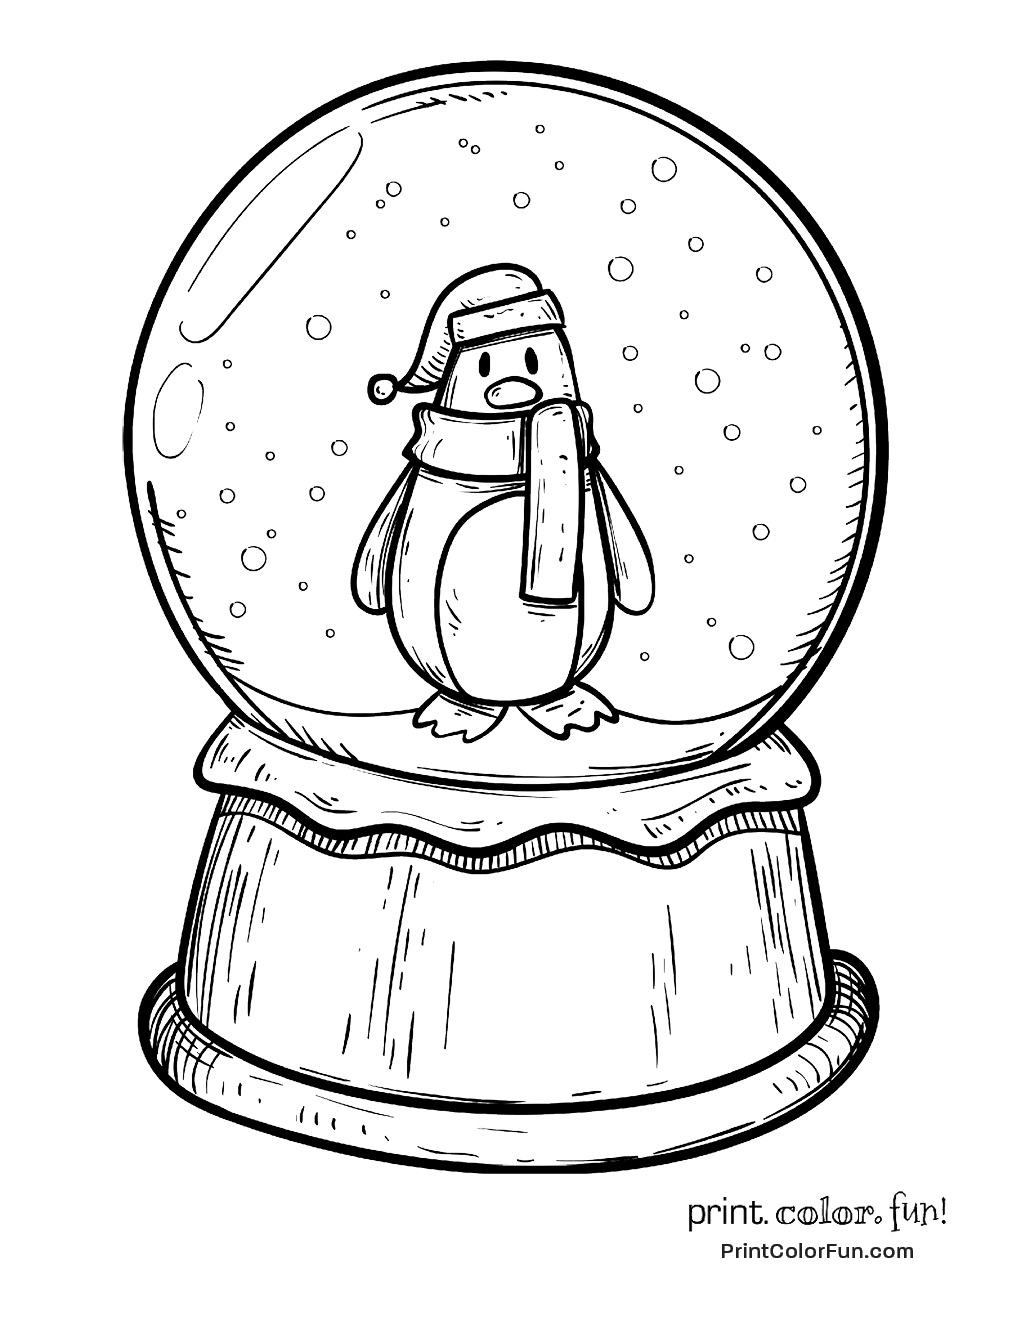 Christmas Globe Coloring Pages With New Snow Page Design Printable Sheet